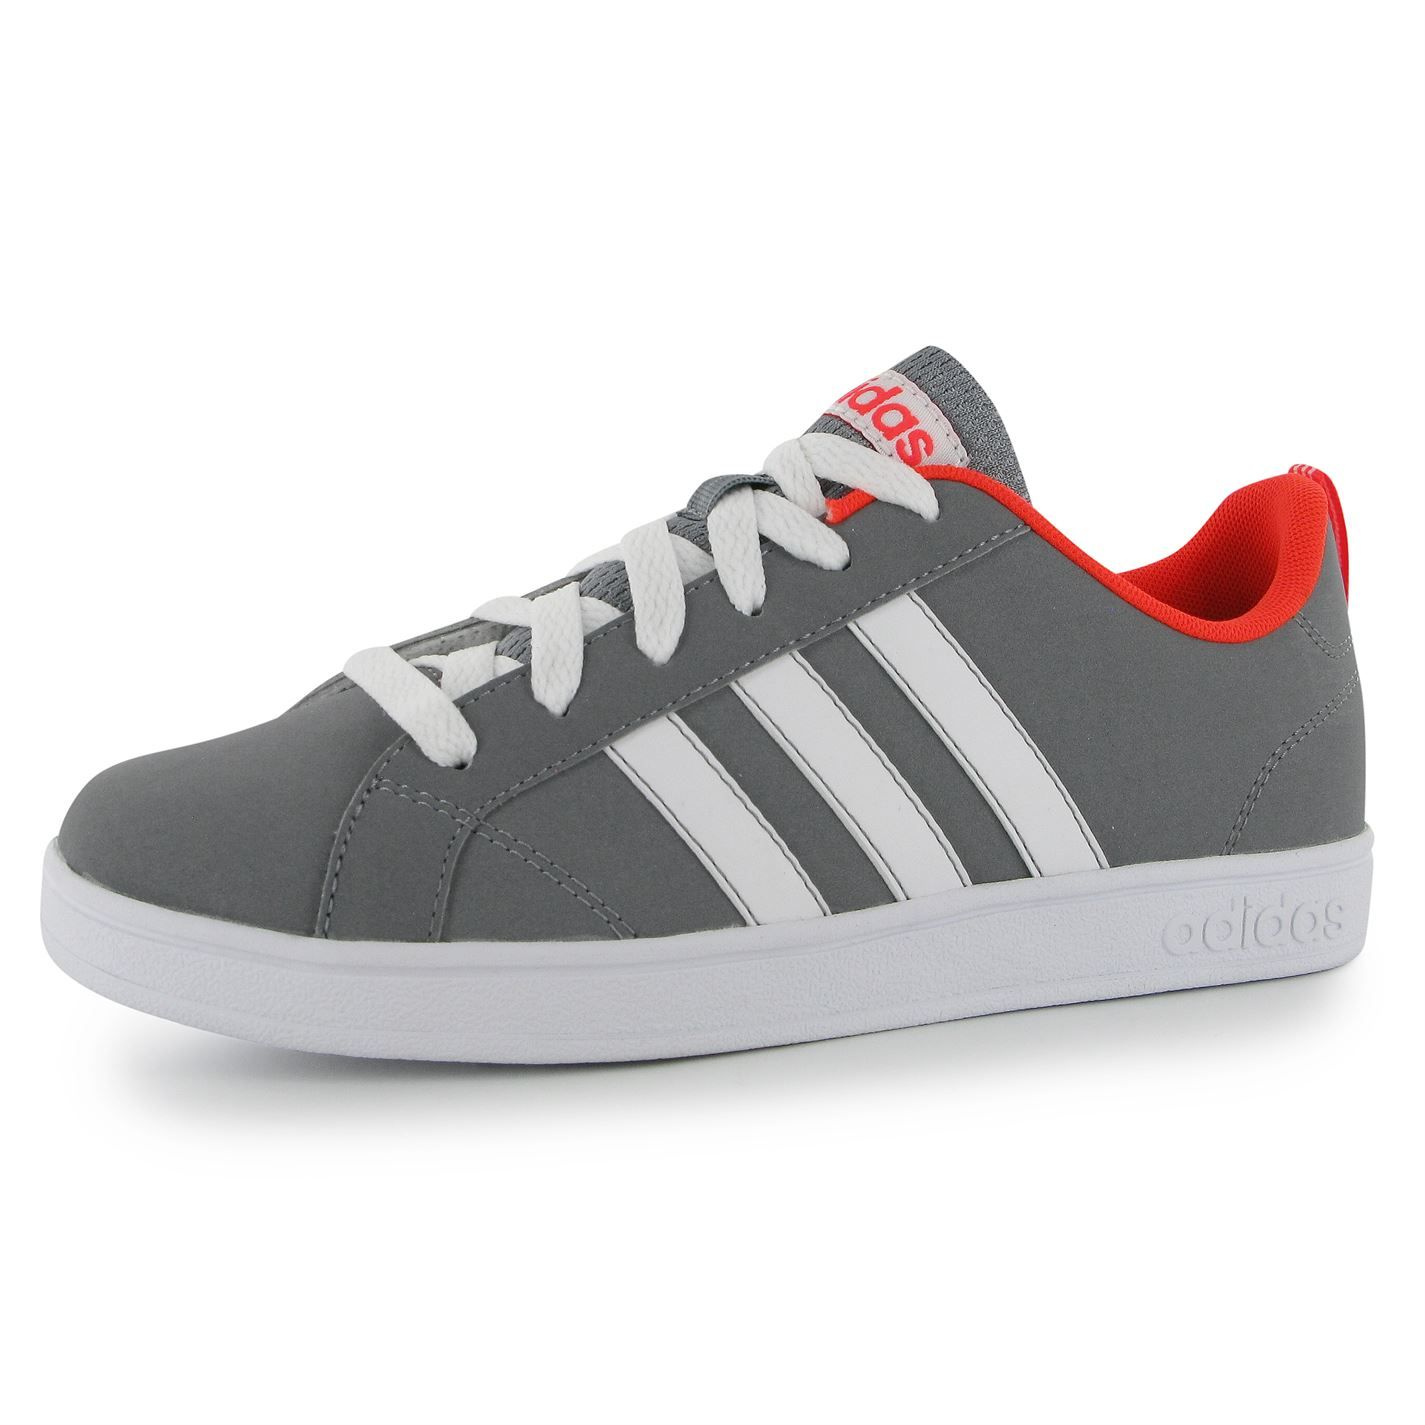 adidas | adidas Advantage Nubuck Trainers Junior | Childrens Trainers